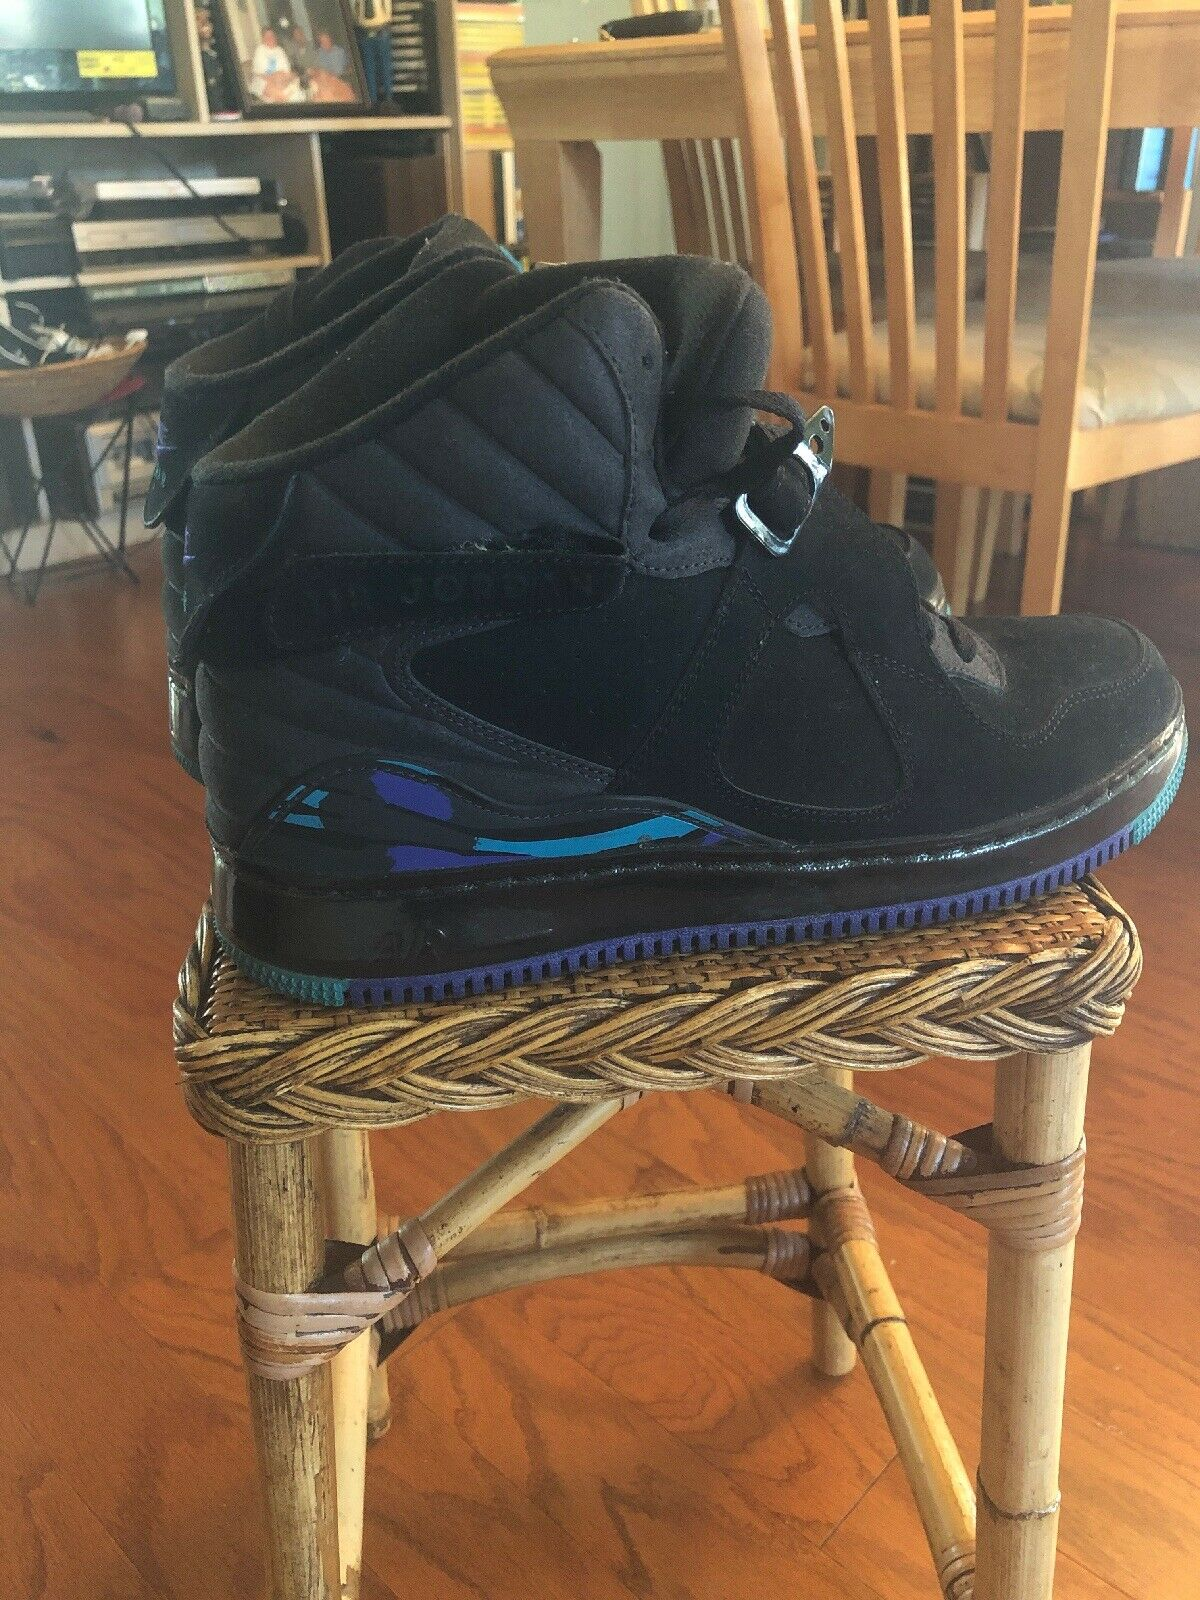 Air Jordan Fusion 8, Size 10.5, Black And Purple